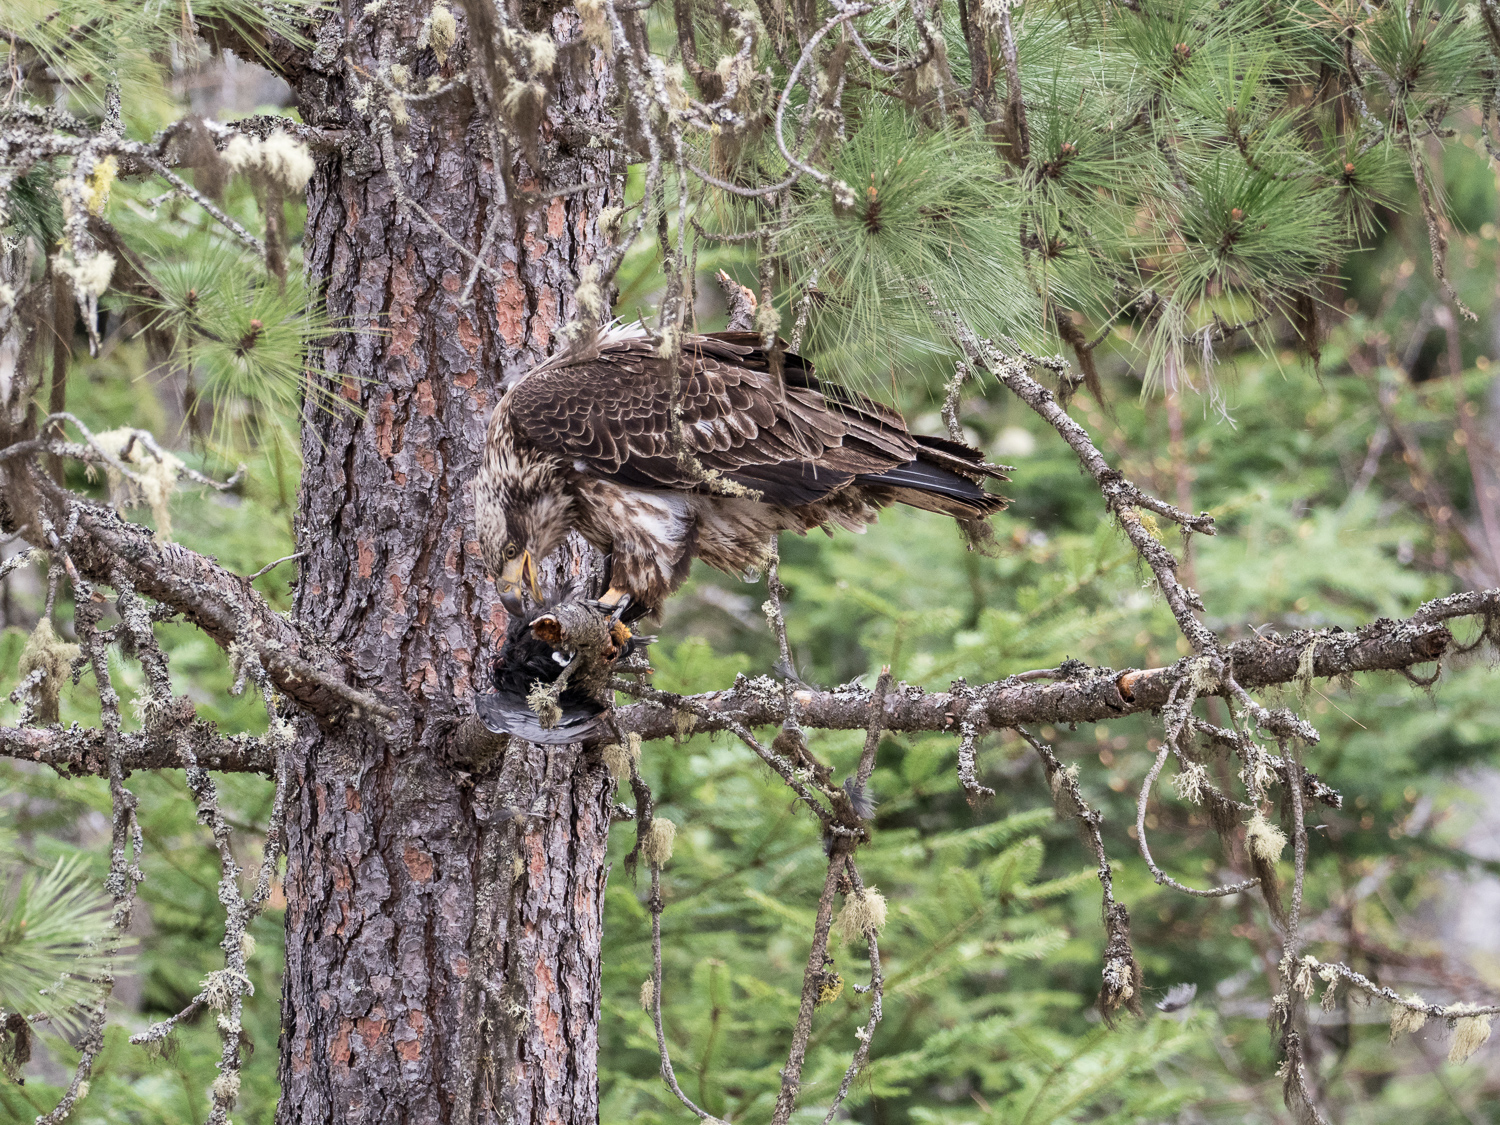 Juvenile Bald Eagle at Kootenai NWR